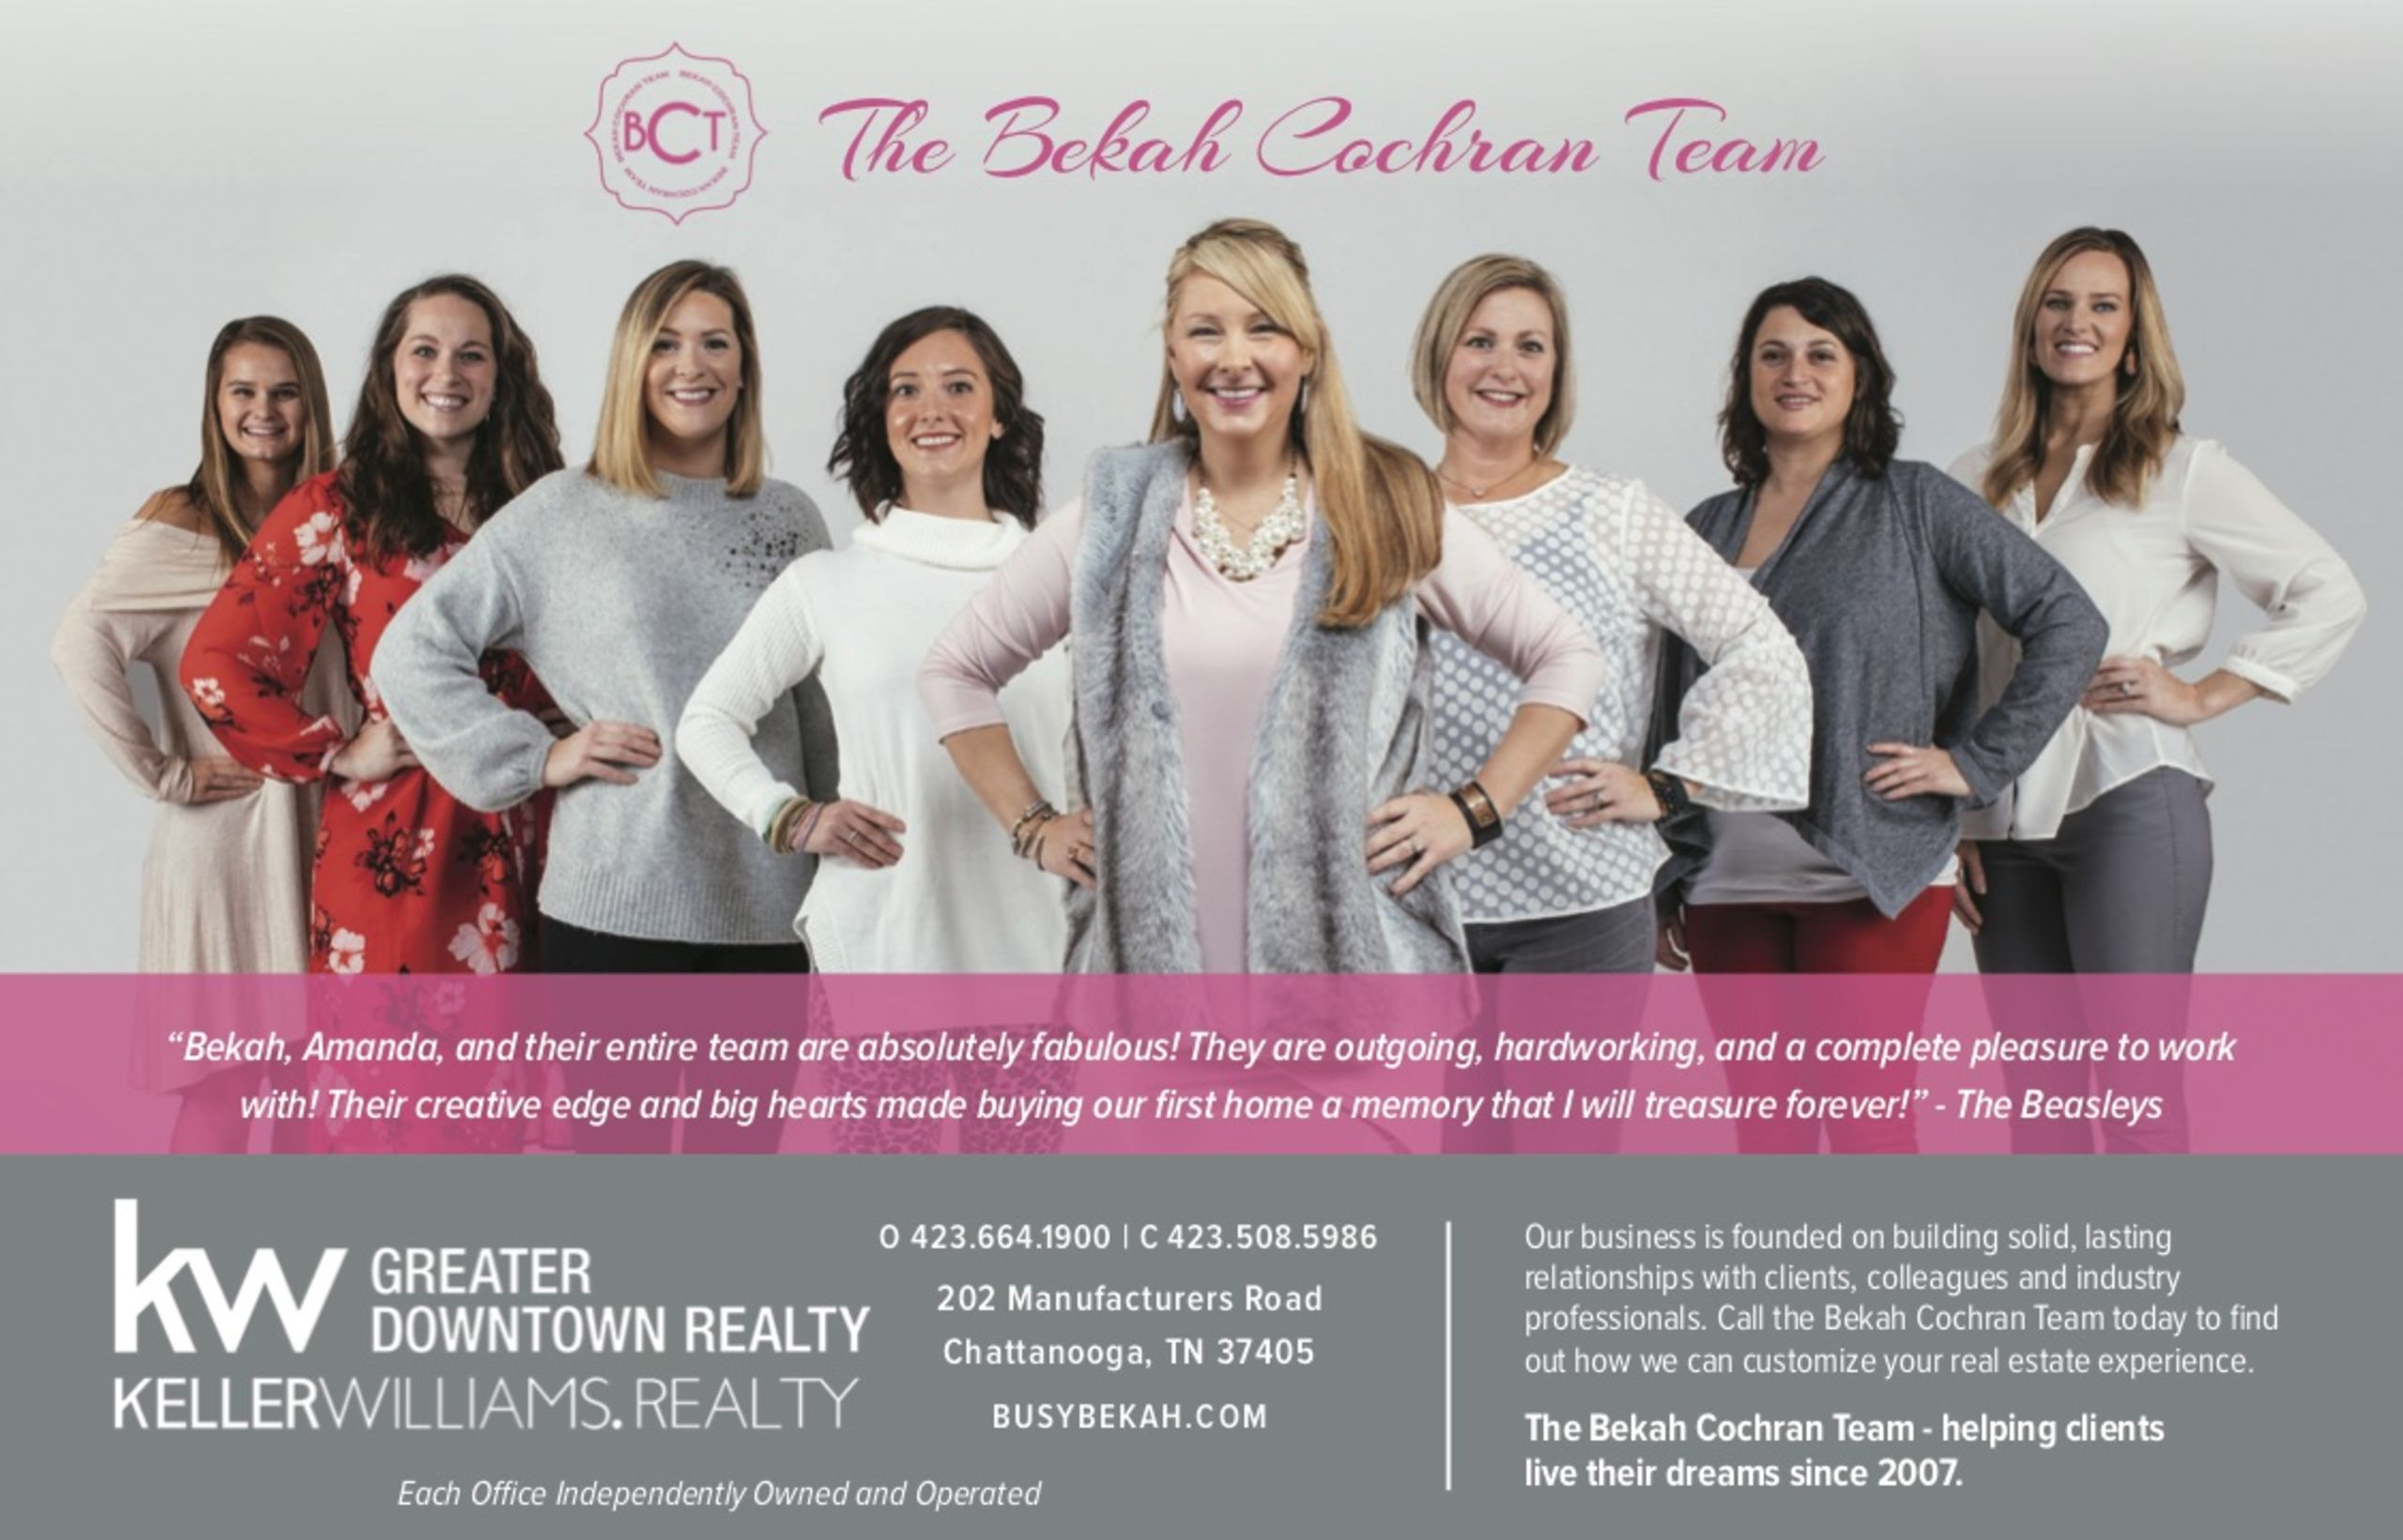 The Bekah Cochran Team - Keller Williams Realty